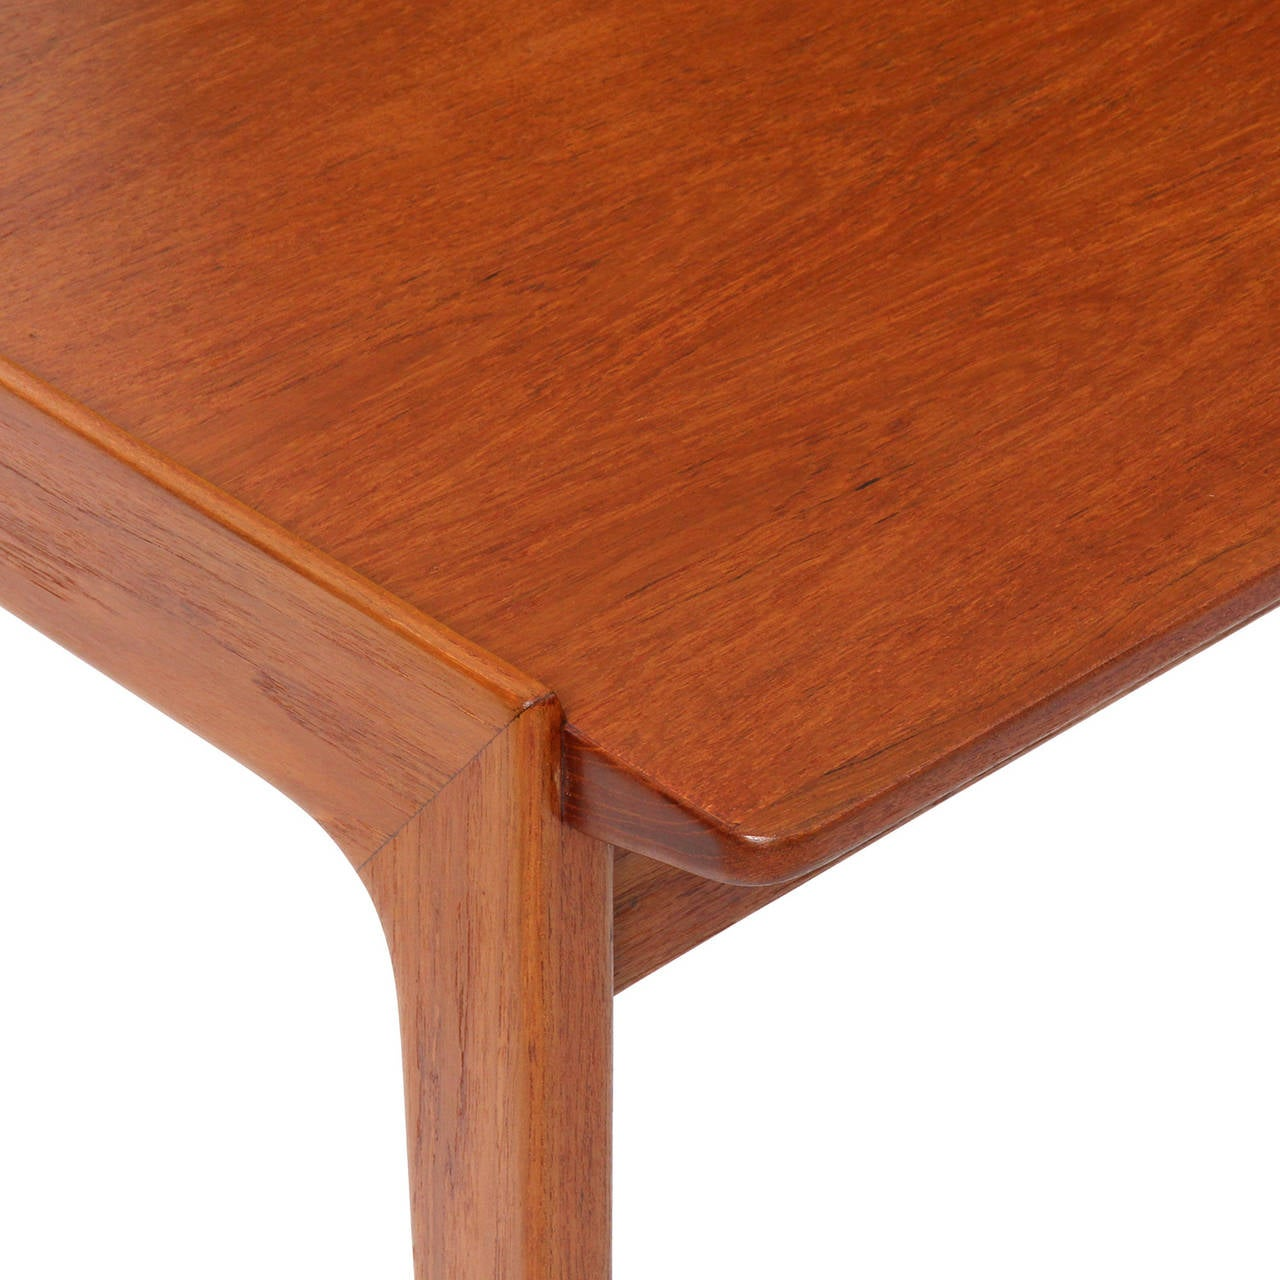 Rosewood Teak Writing Desk by Tove & Edvard Kindt-Larsen For Sale